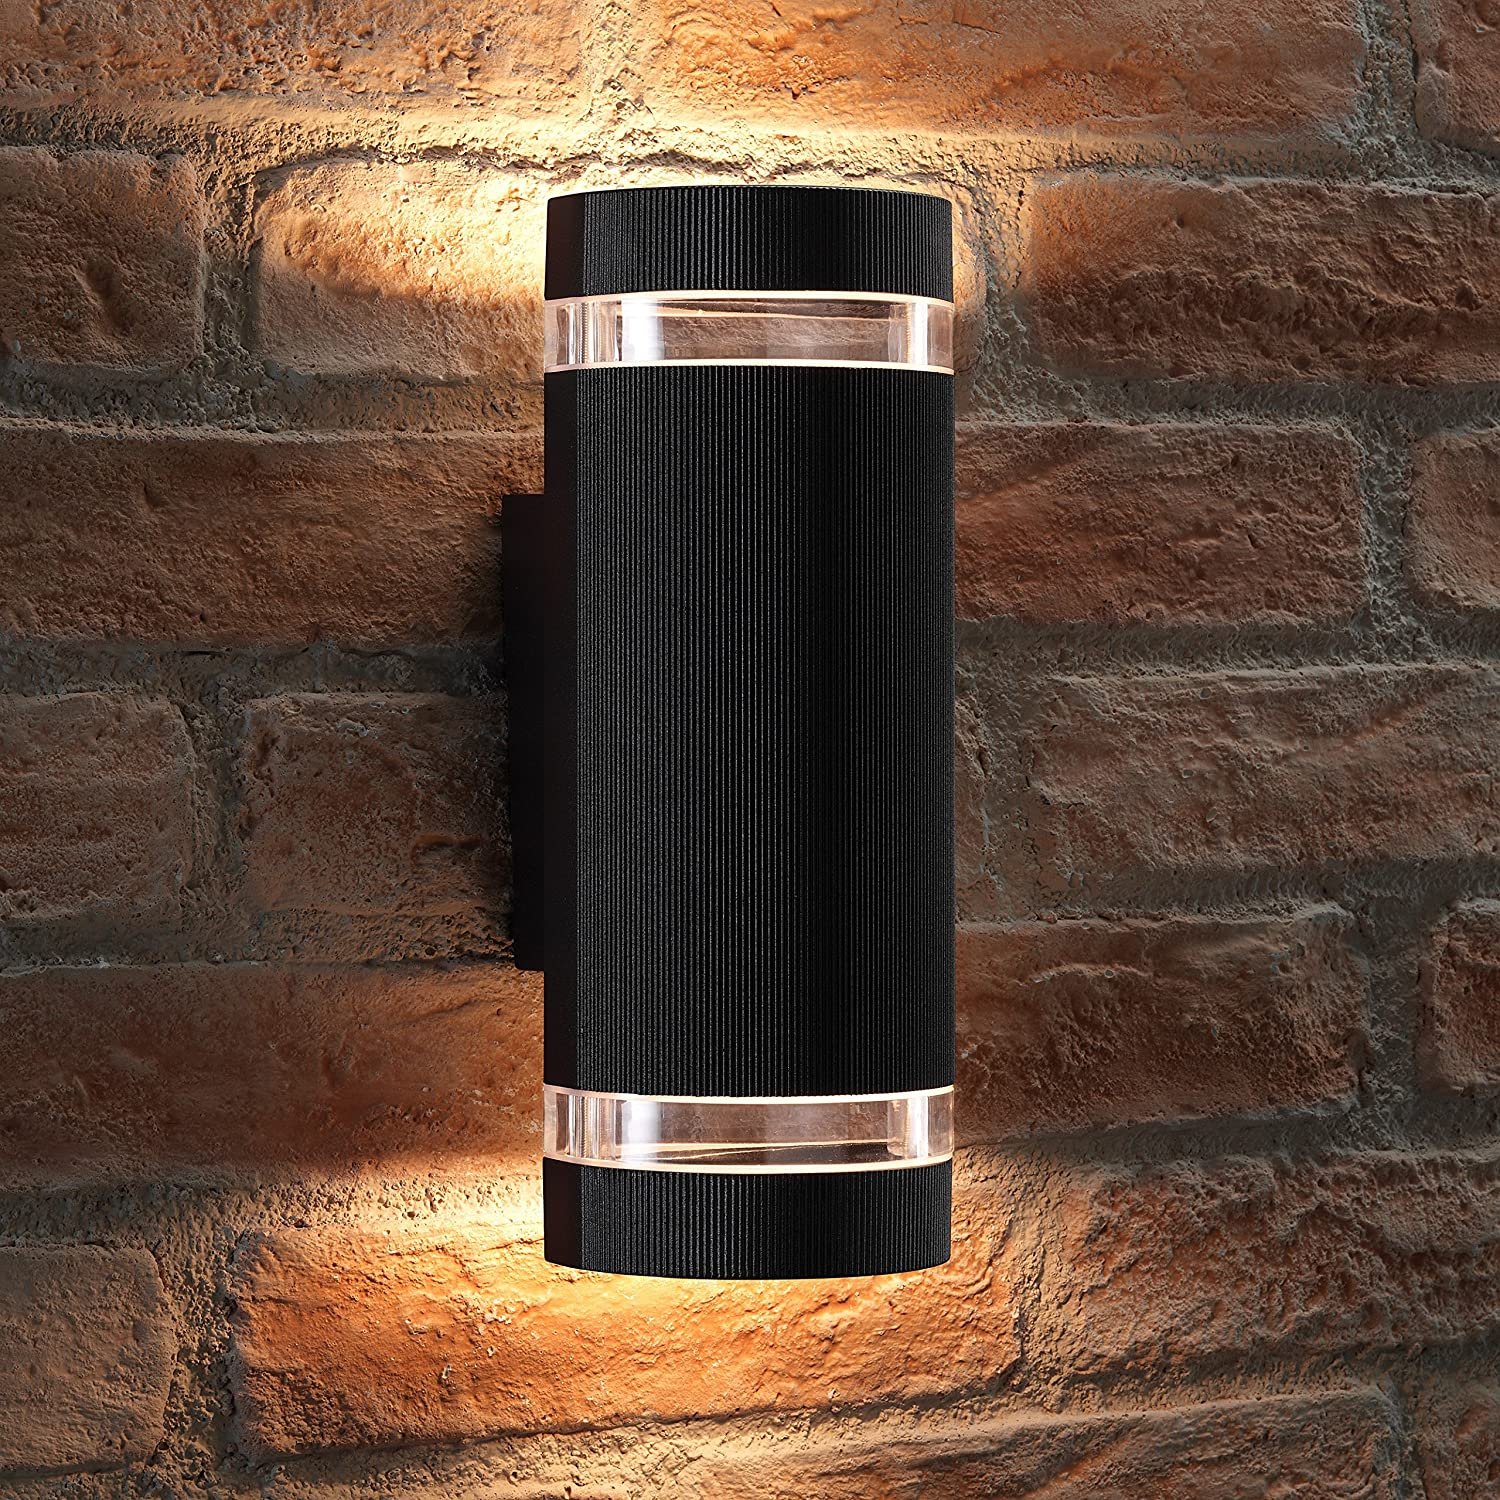 Auraglow Indoor/Outdoor Double up & Down Wall Light - Black - Cool White LED Bulbs Included [Energy Class A+]